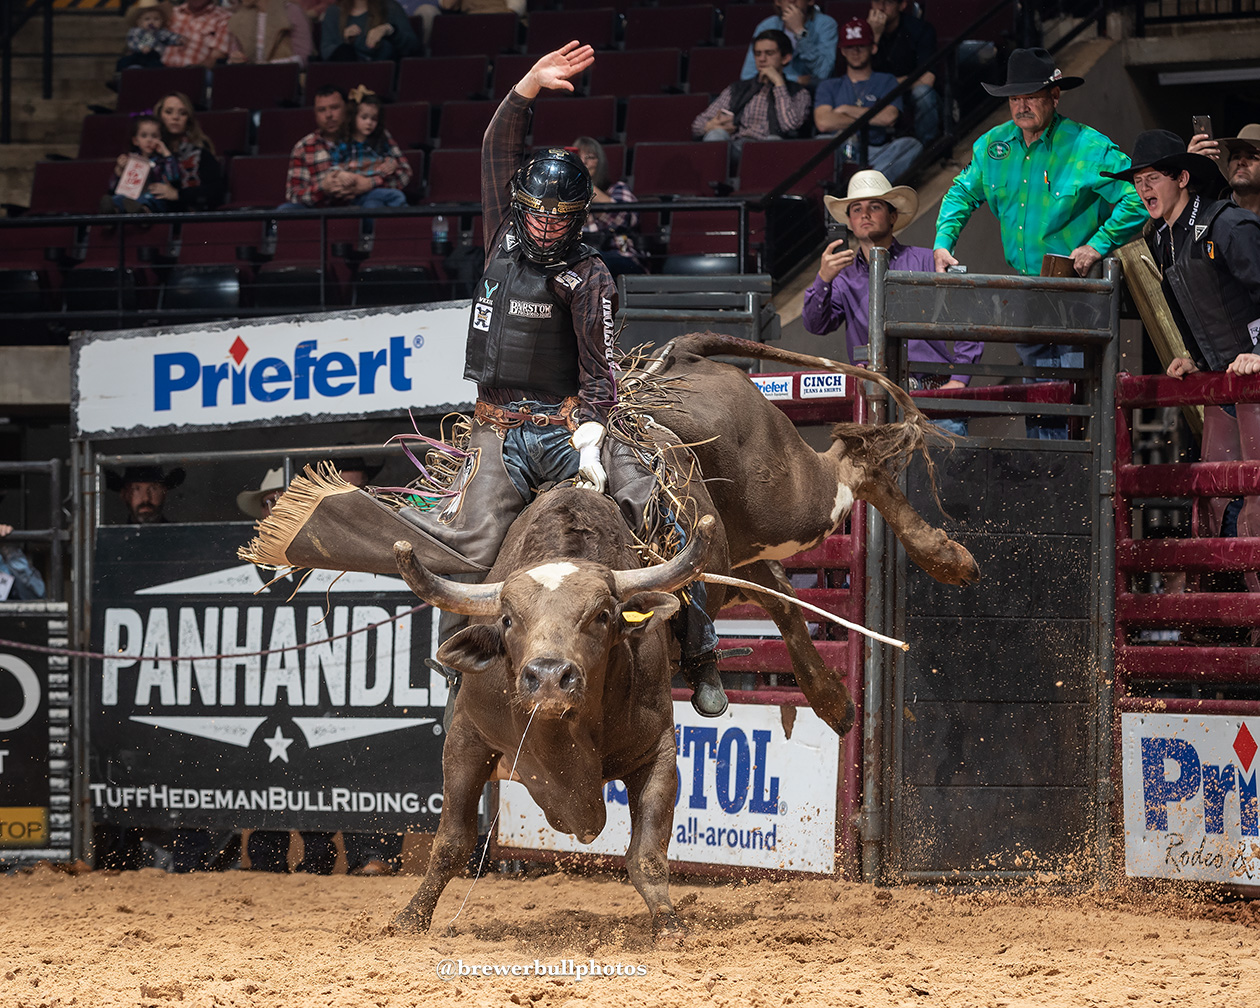 2-Time NFR qualifier and 2017 PRCA Resistol Rookie of the Year set to compete at the South Point on Saturday night.